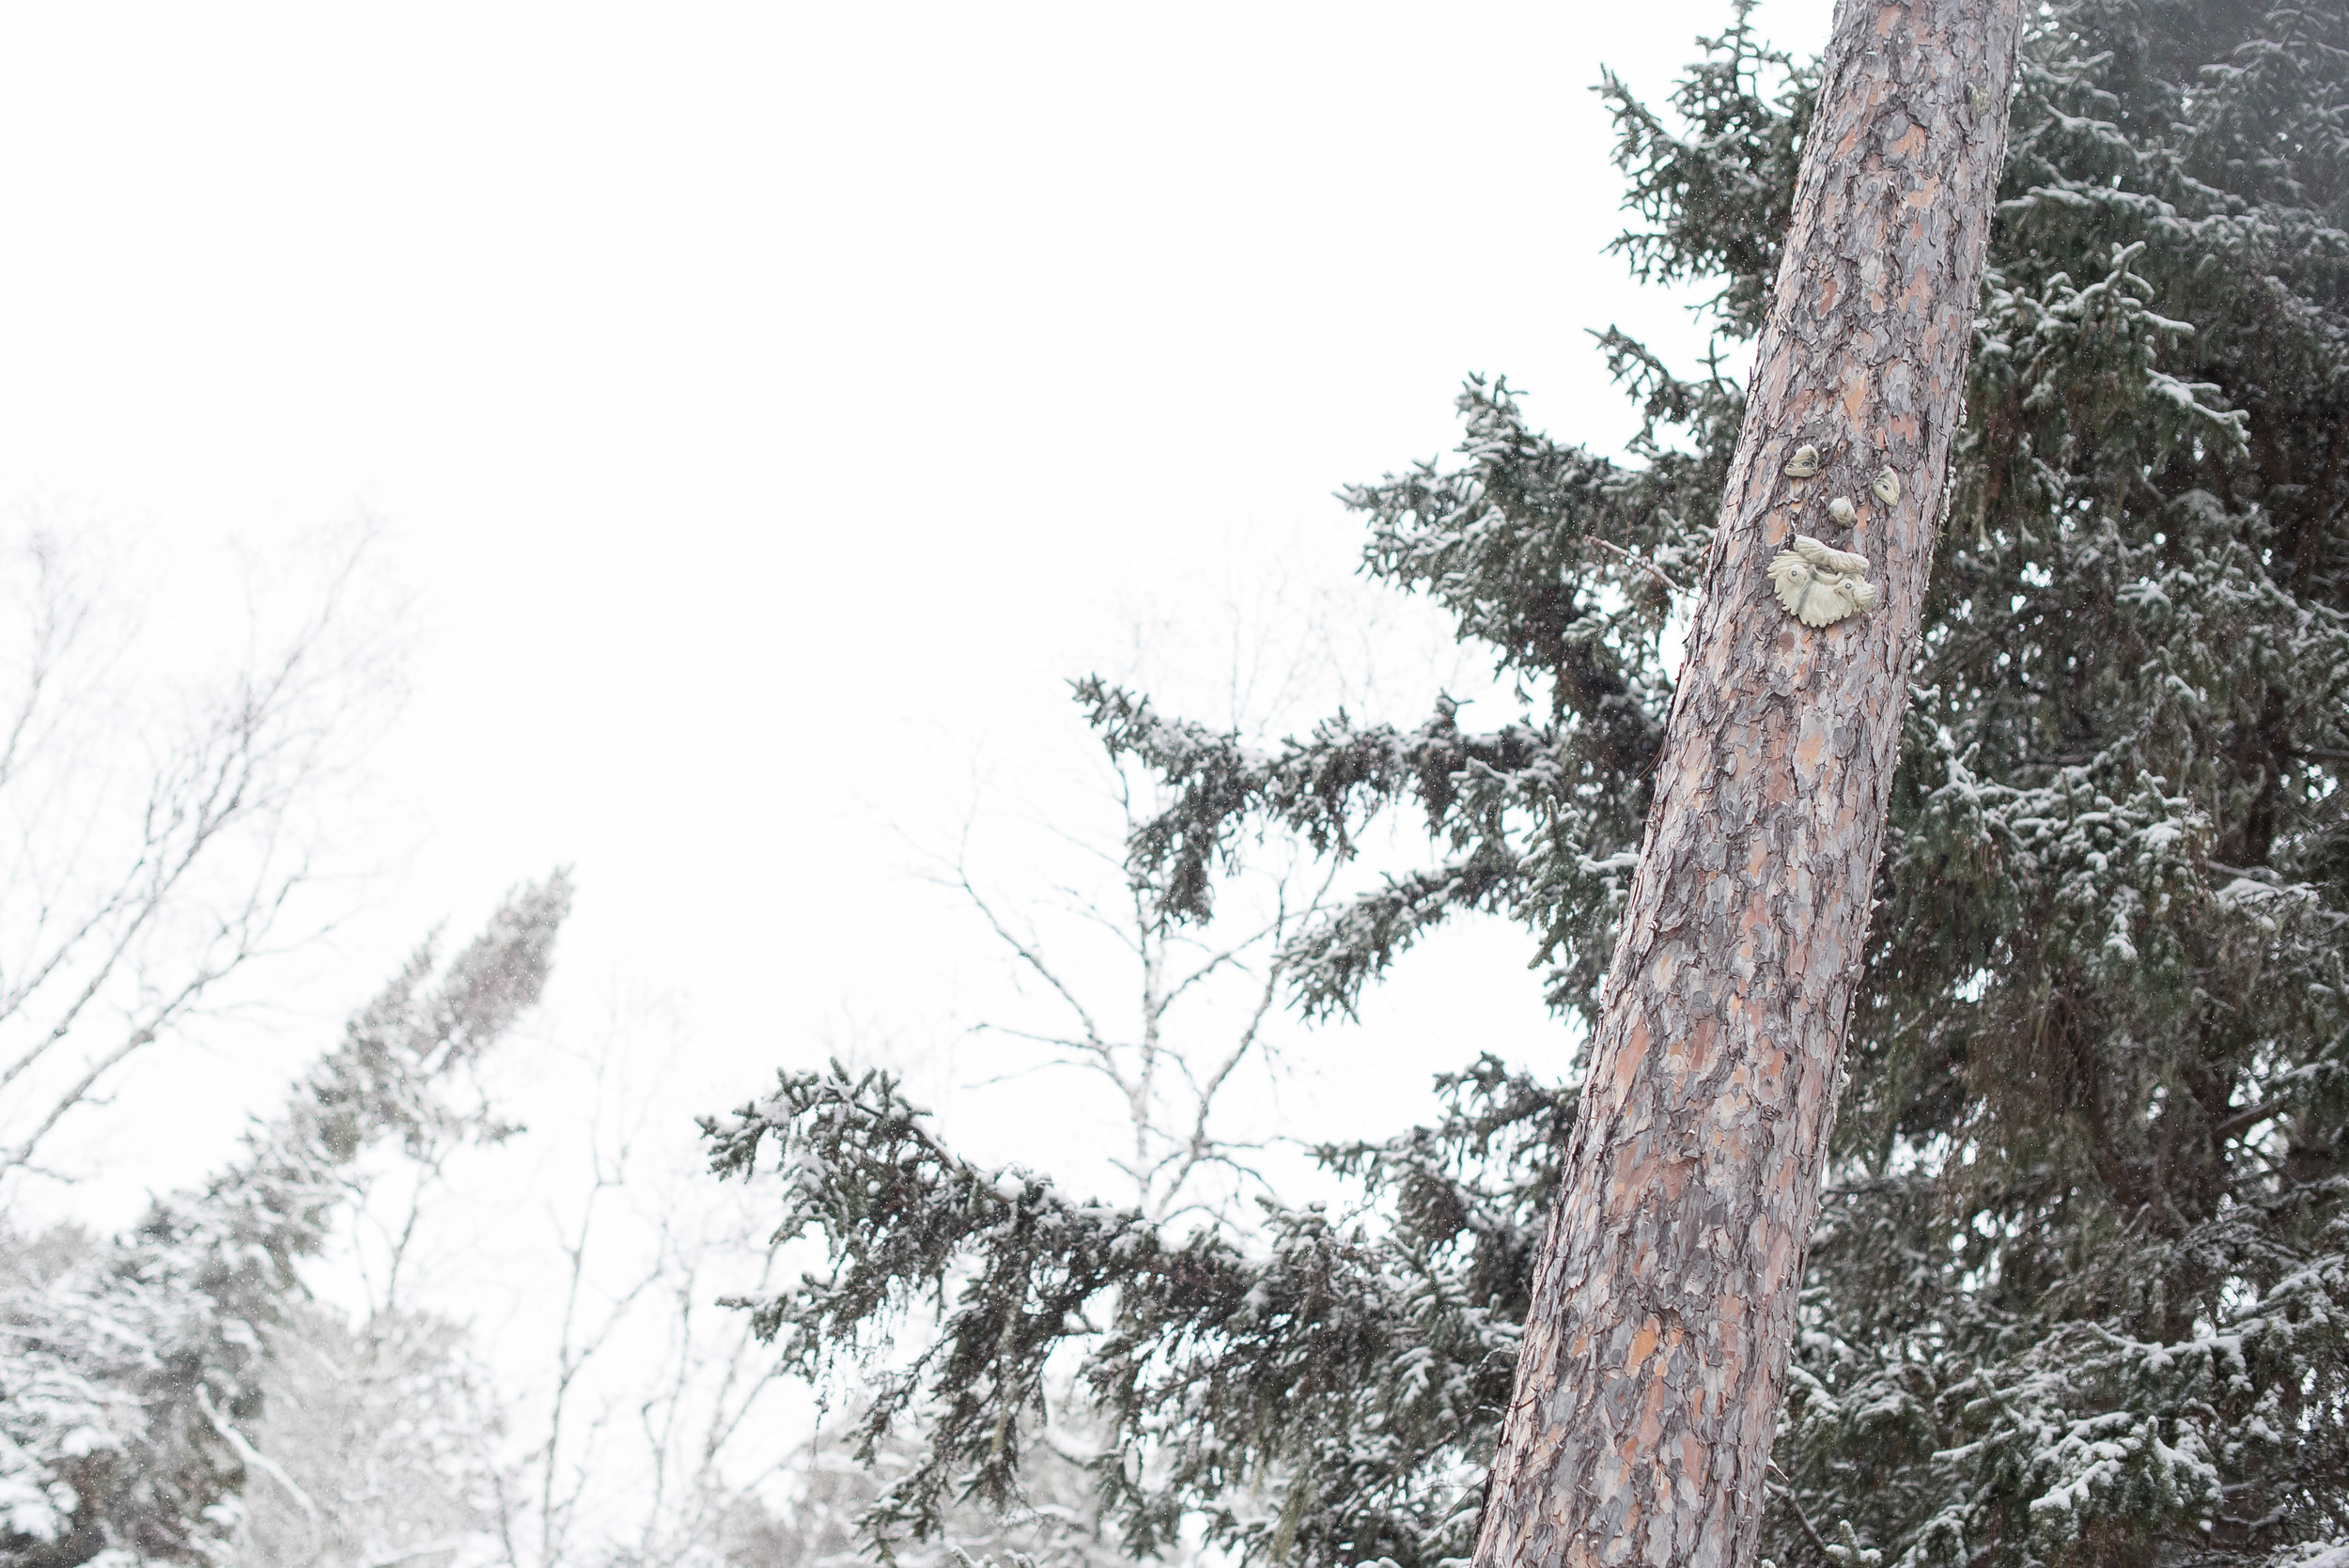 Since Lorne used to work for Abram Lake Park and knows all about the location, he pointed out one of the faces built into a tree we passed on the property... do you see it?